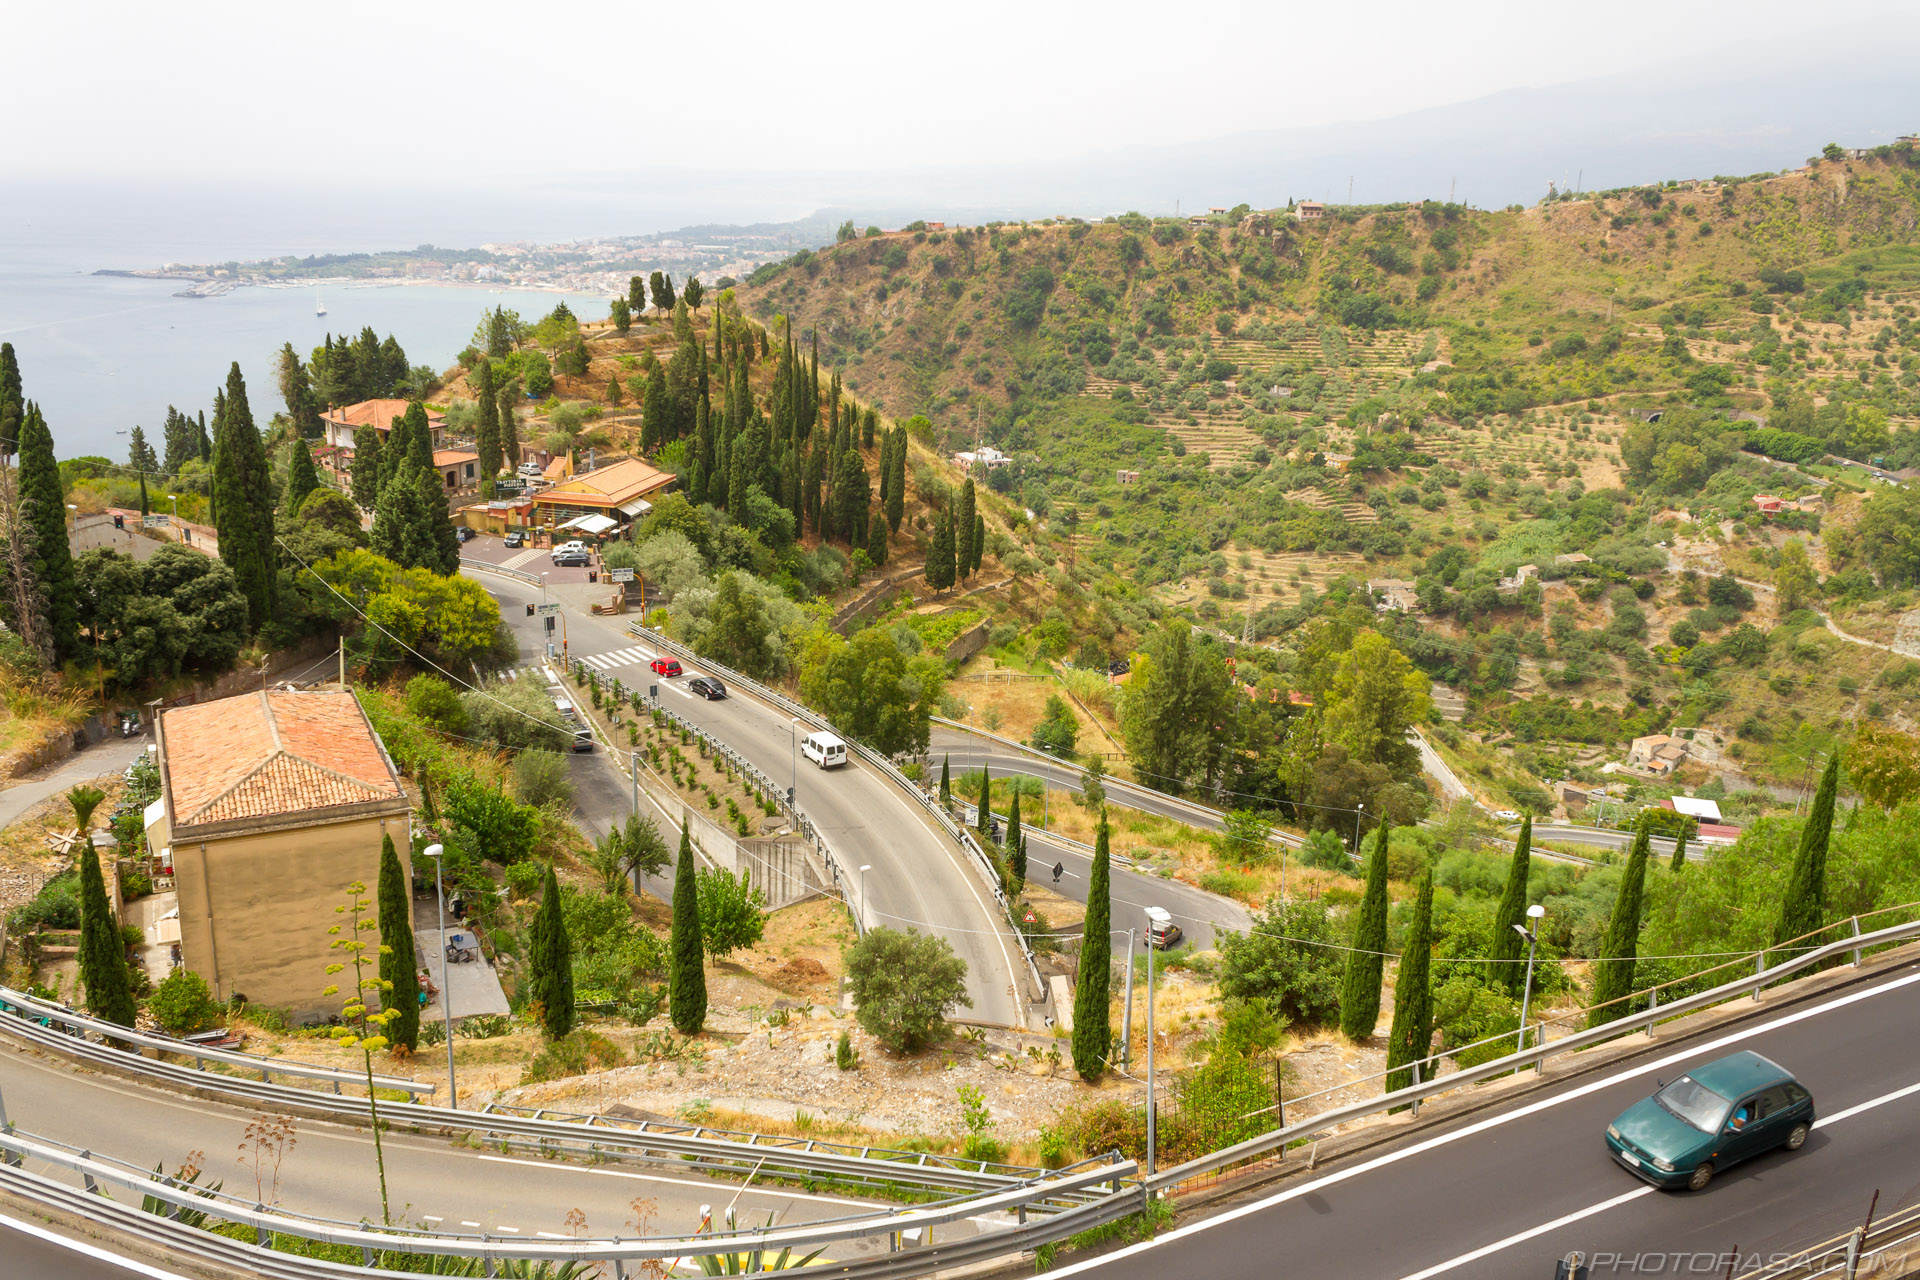 https://photorasa.com/taormina/roads-up-to-taormina-town/